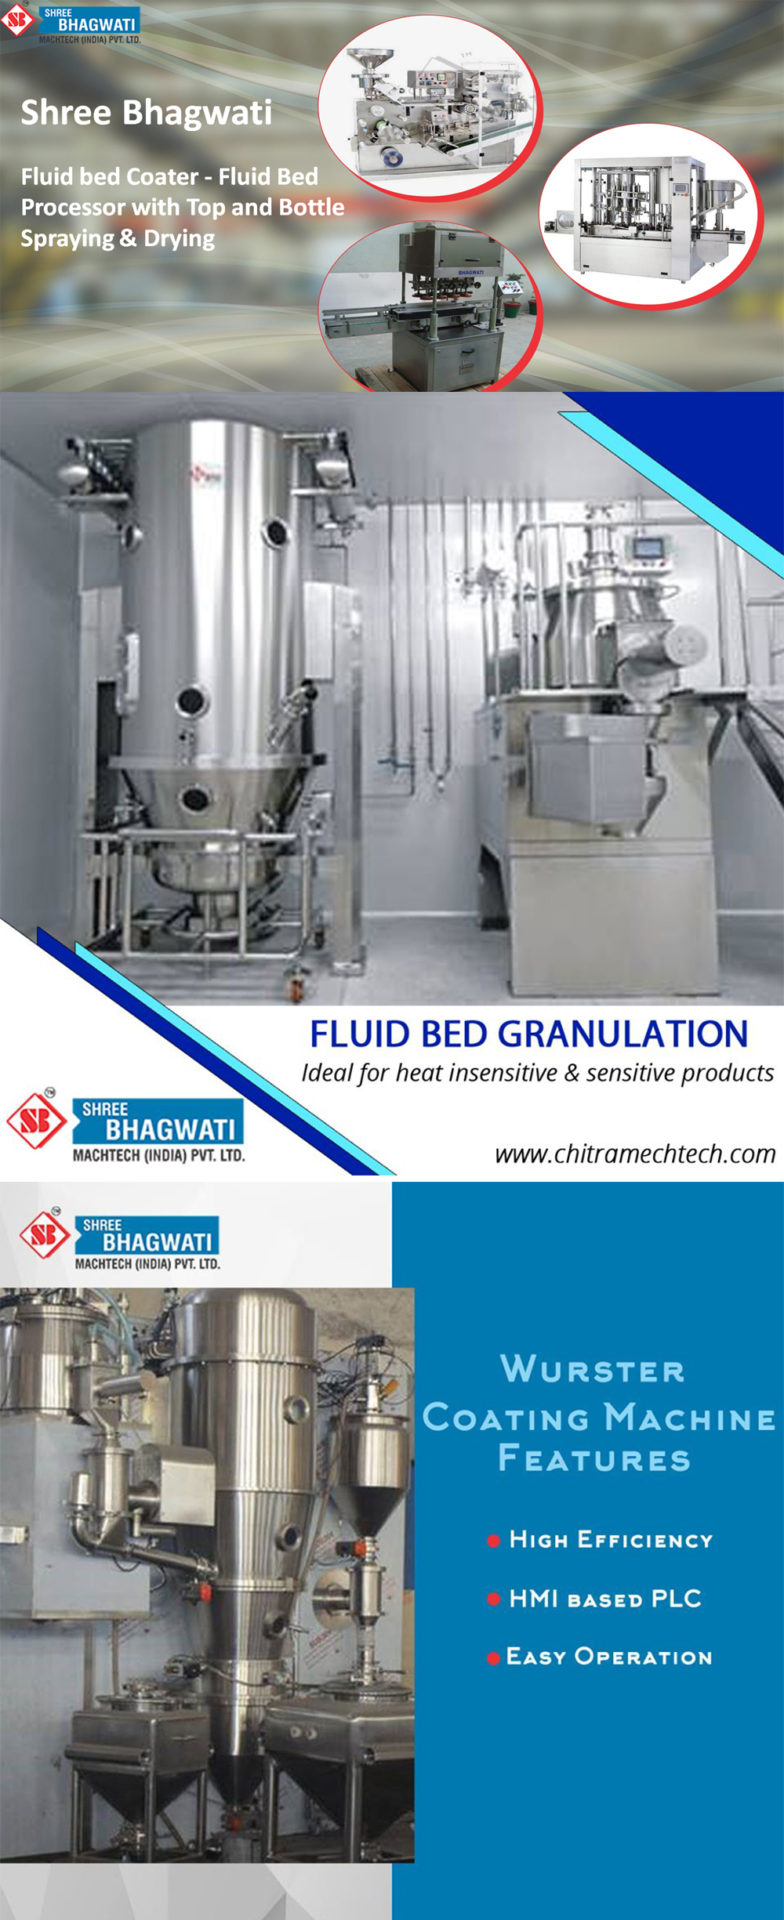 Fluid bed Coater - Fluid Bed Processor with Top and Bottle Spraying & Drying